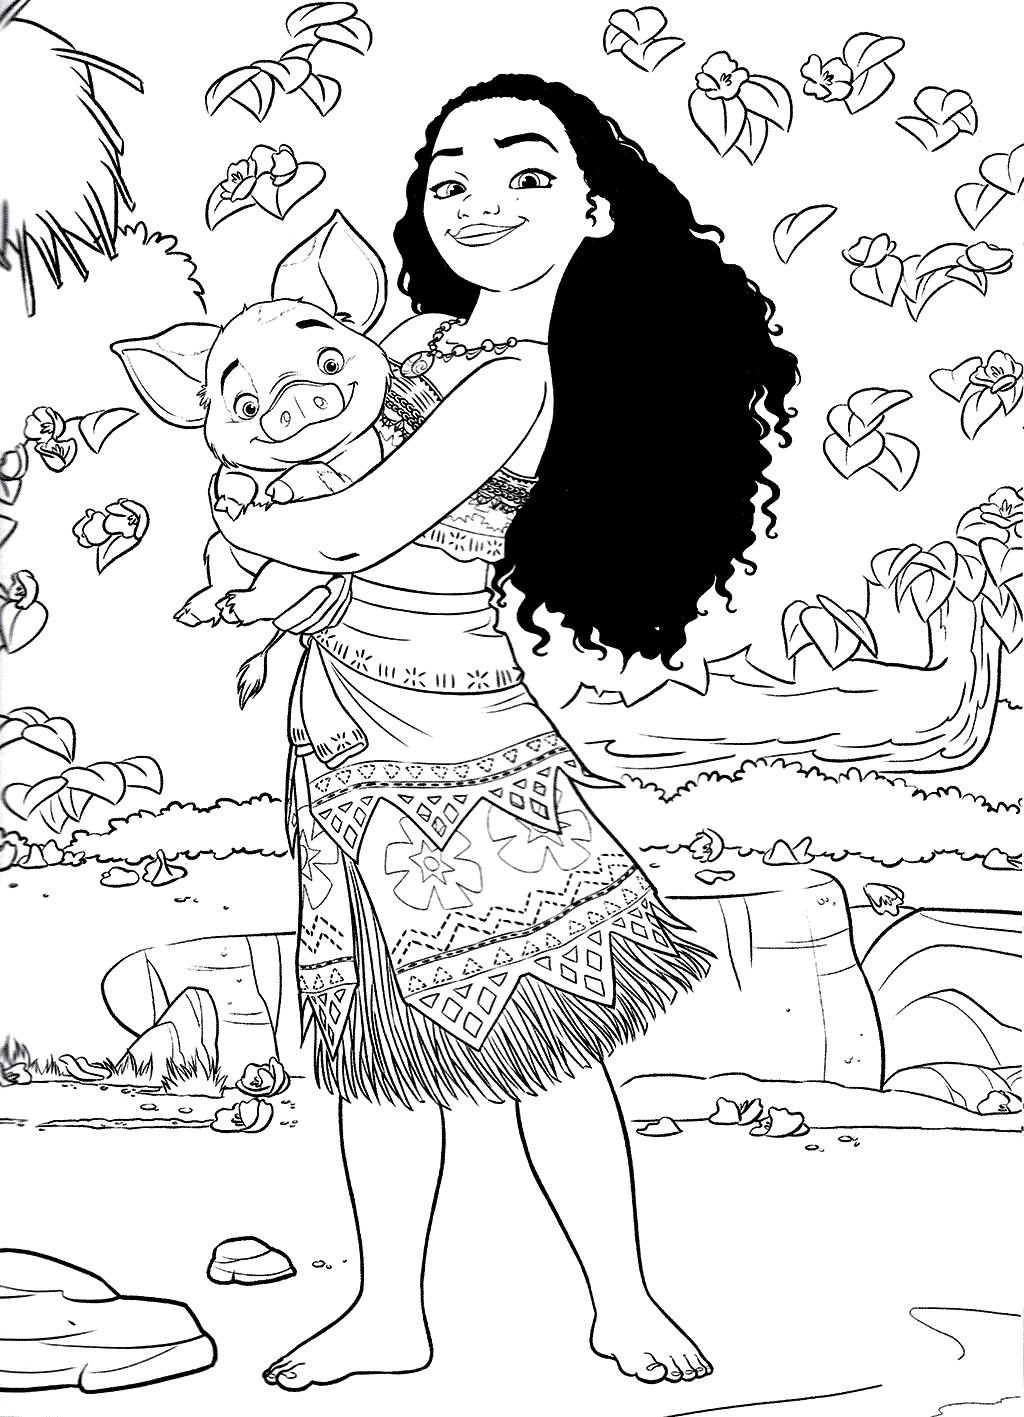 Disney princess birthday coloring pages - Moana Coloring Pages